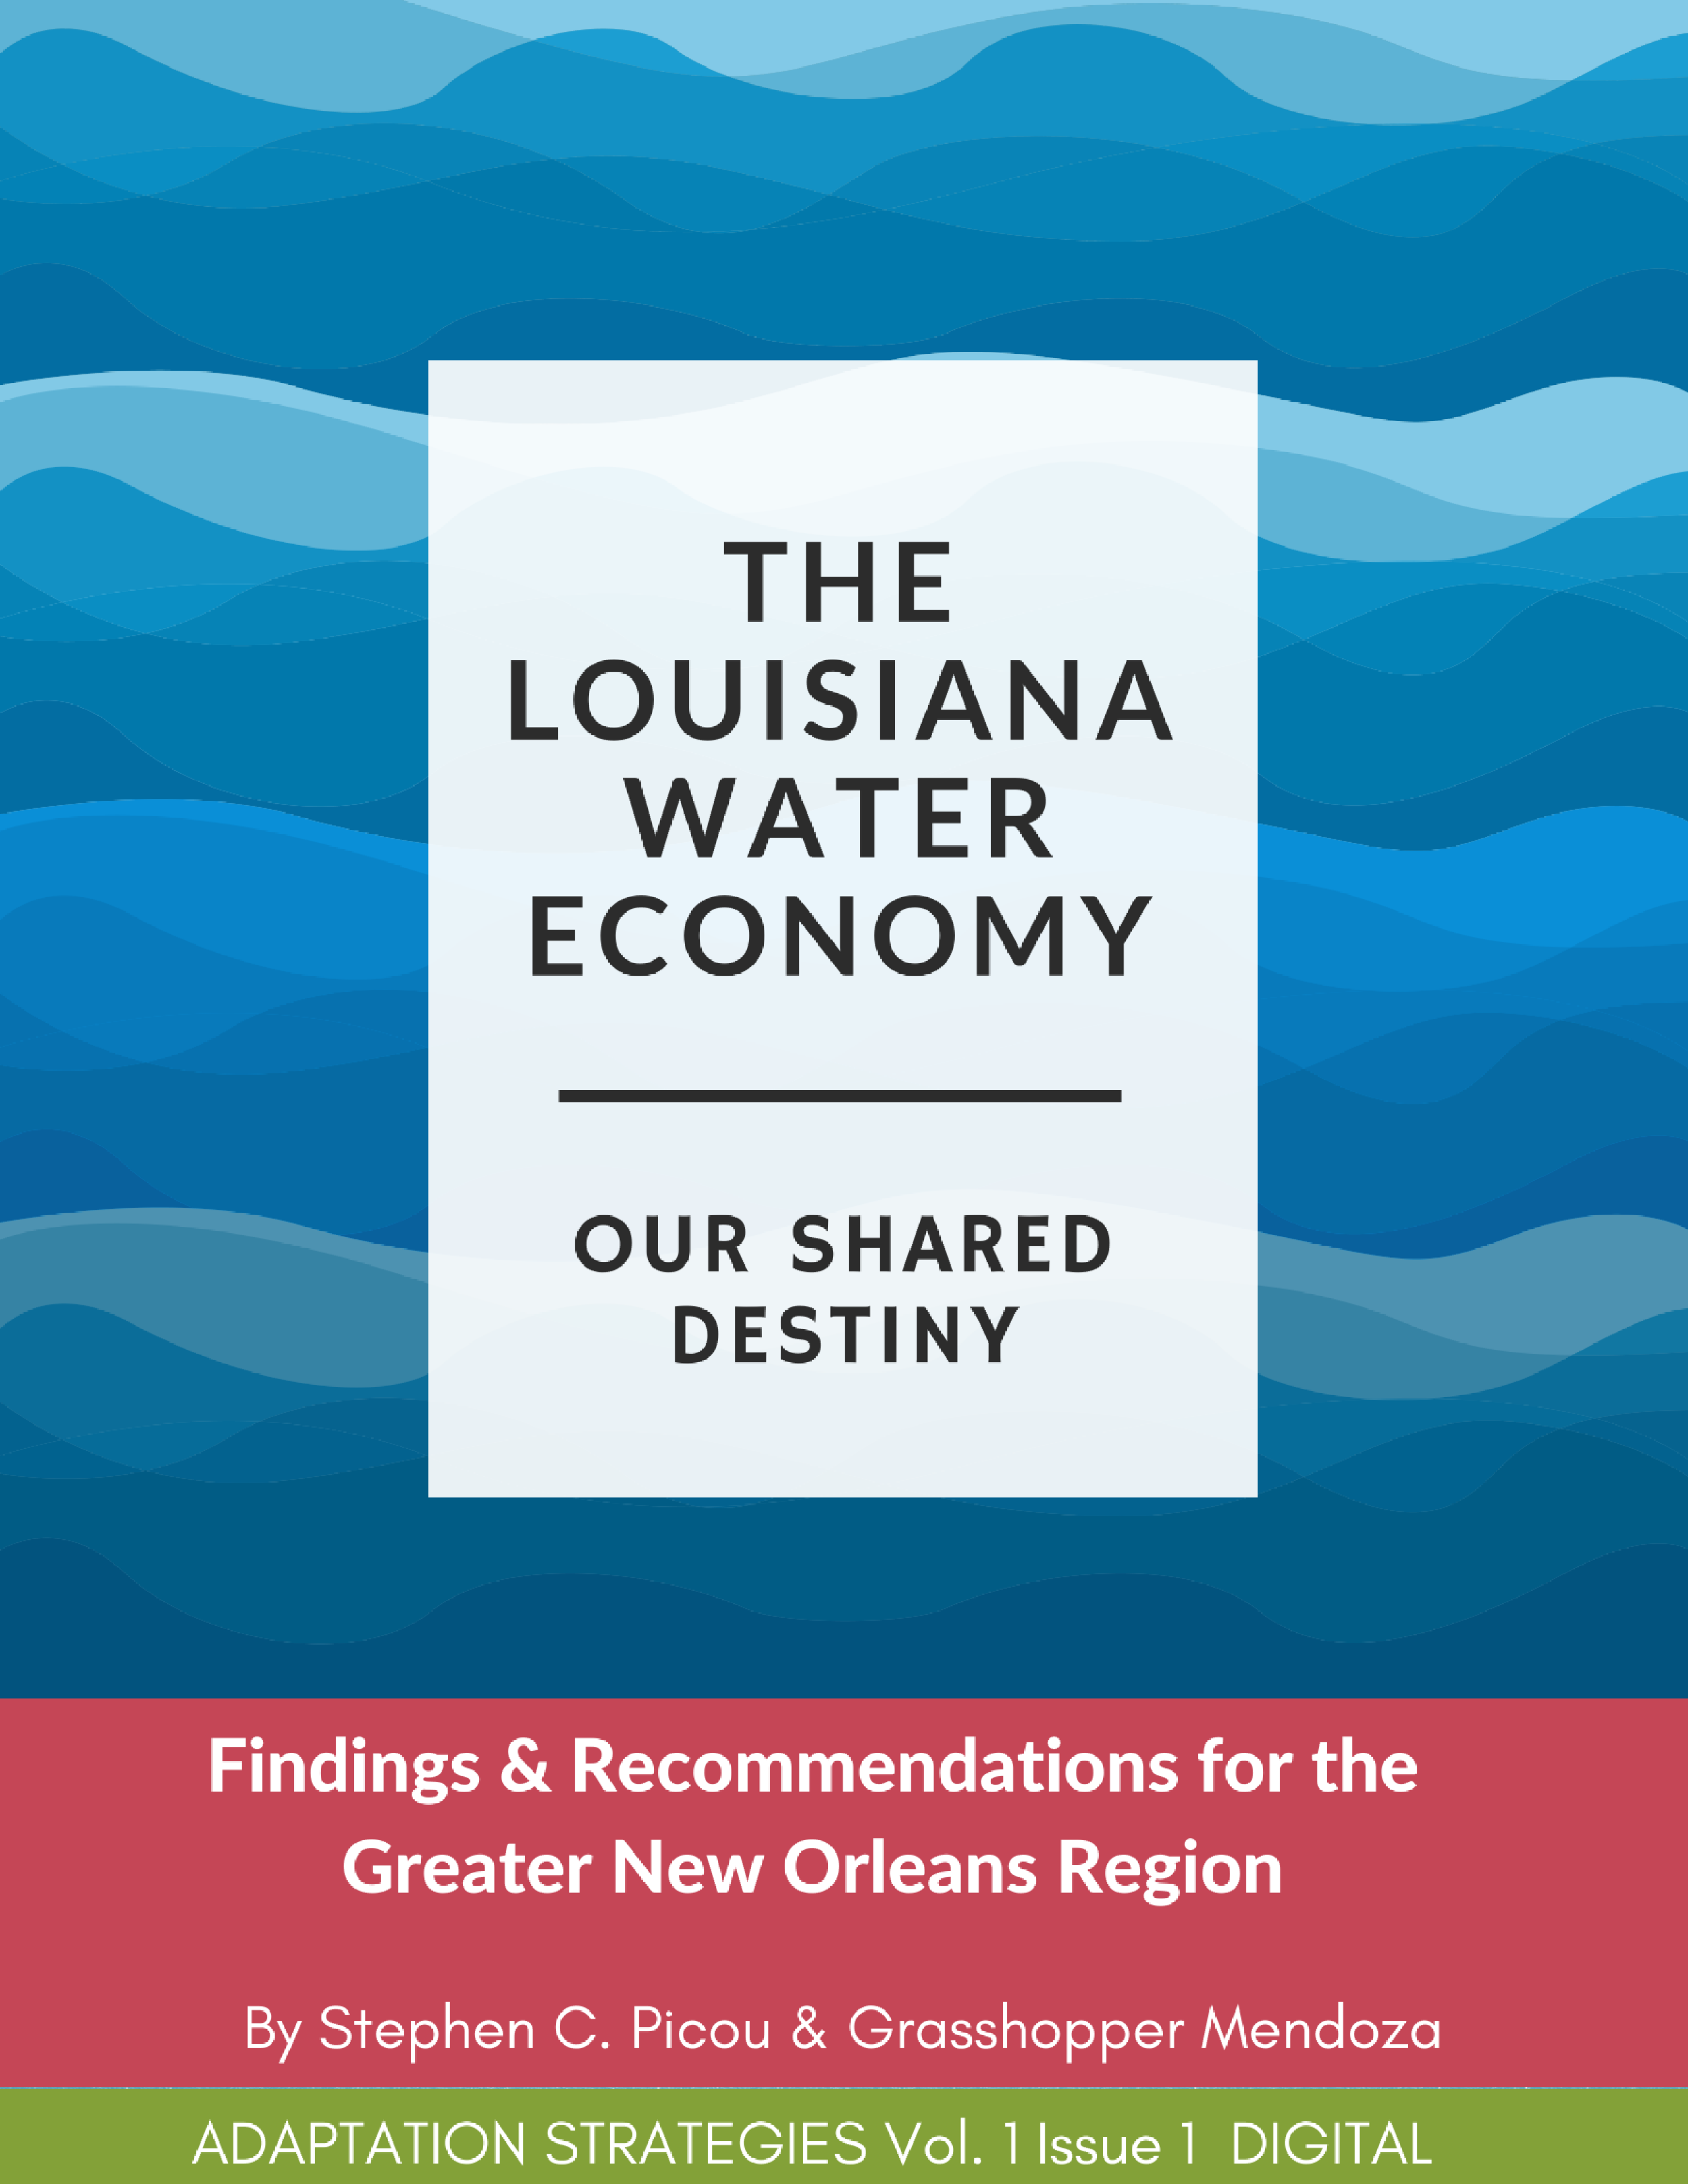 Copy of the Louisiana Water Economy_Our Shared Destiny-2 (1).png